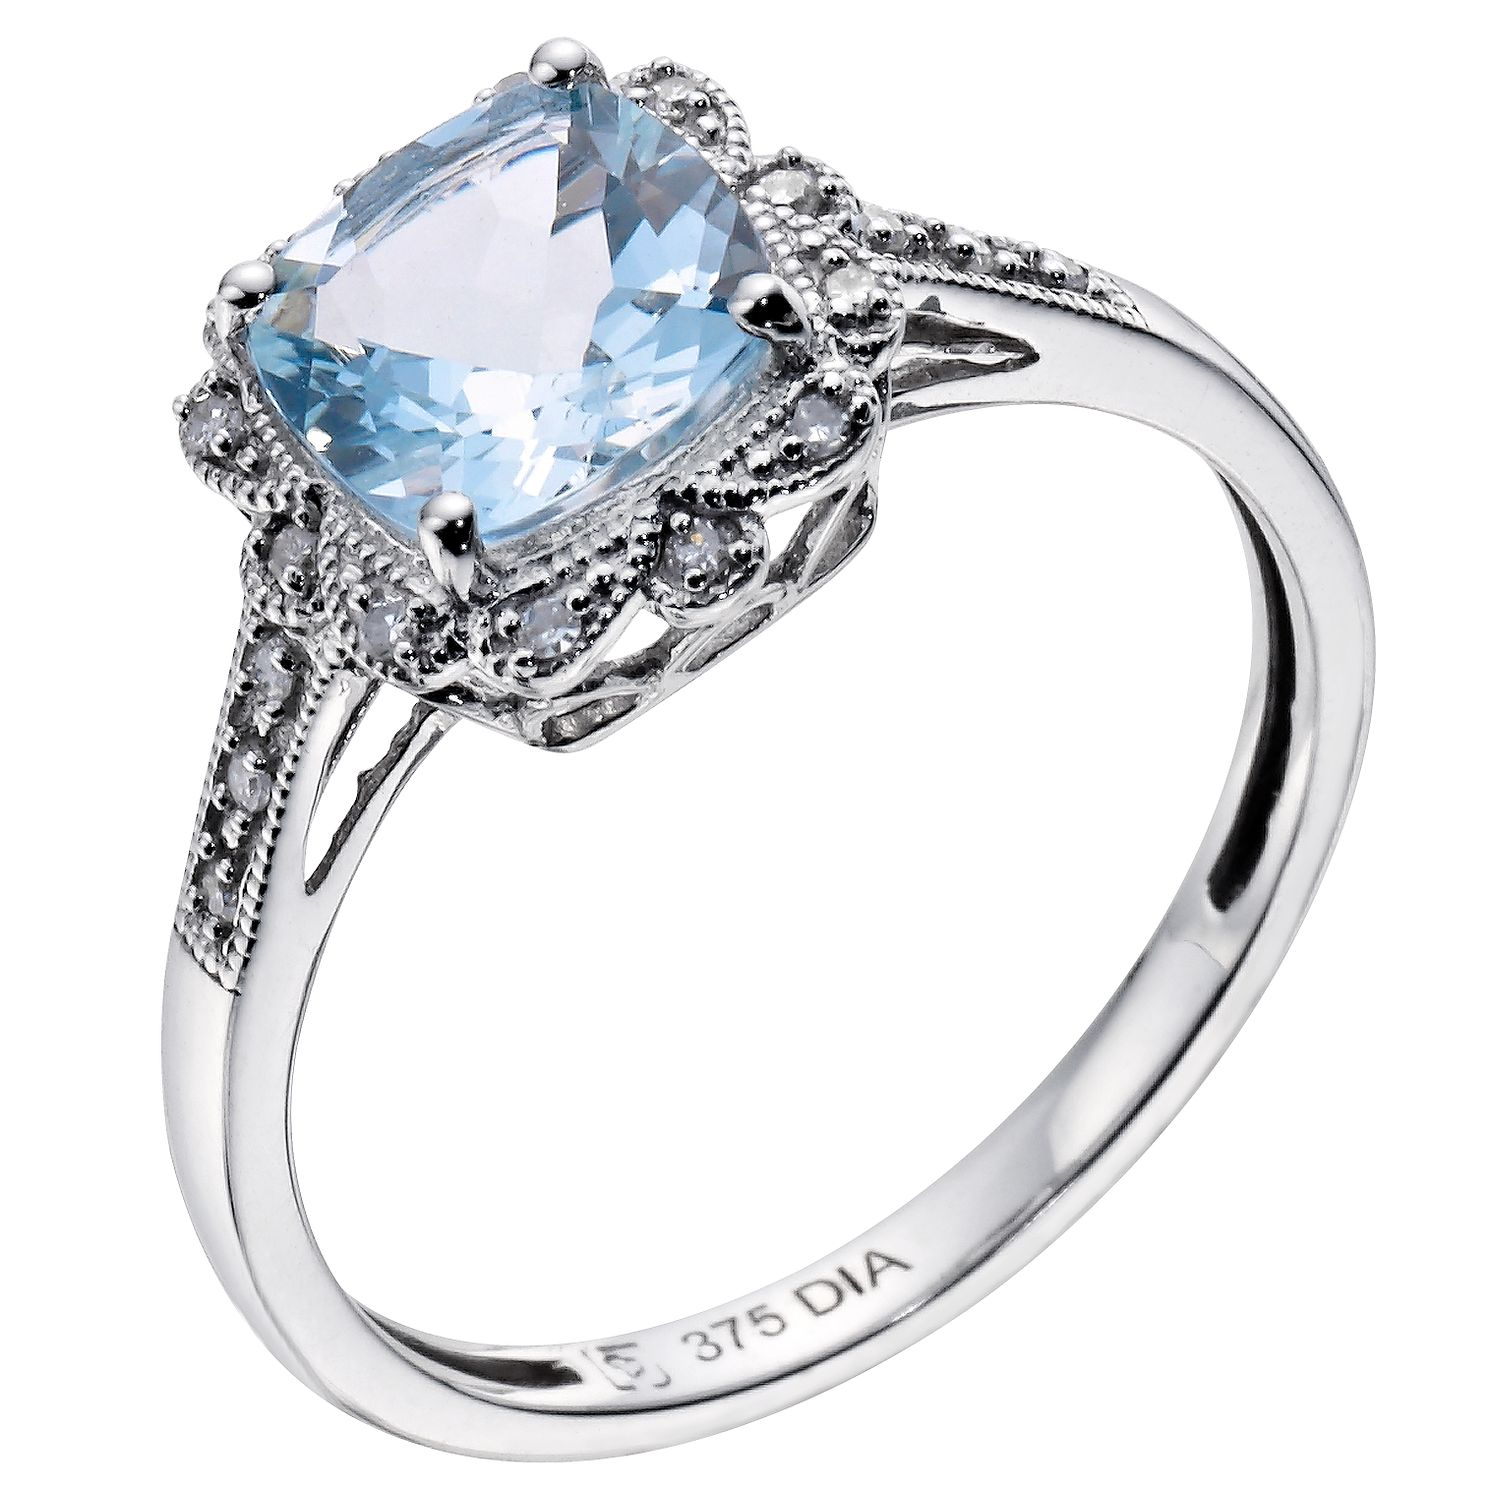 matthew jewellery ring img shaped product weldon aquamarine pear